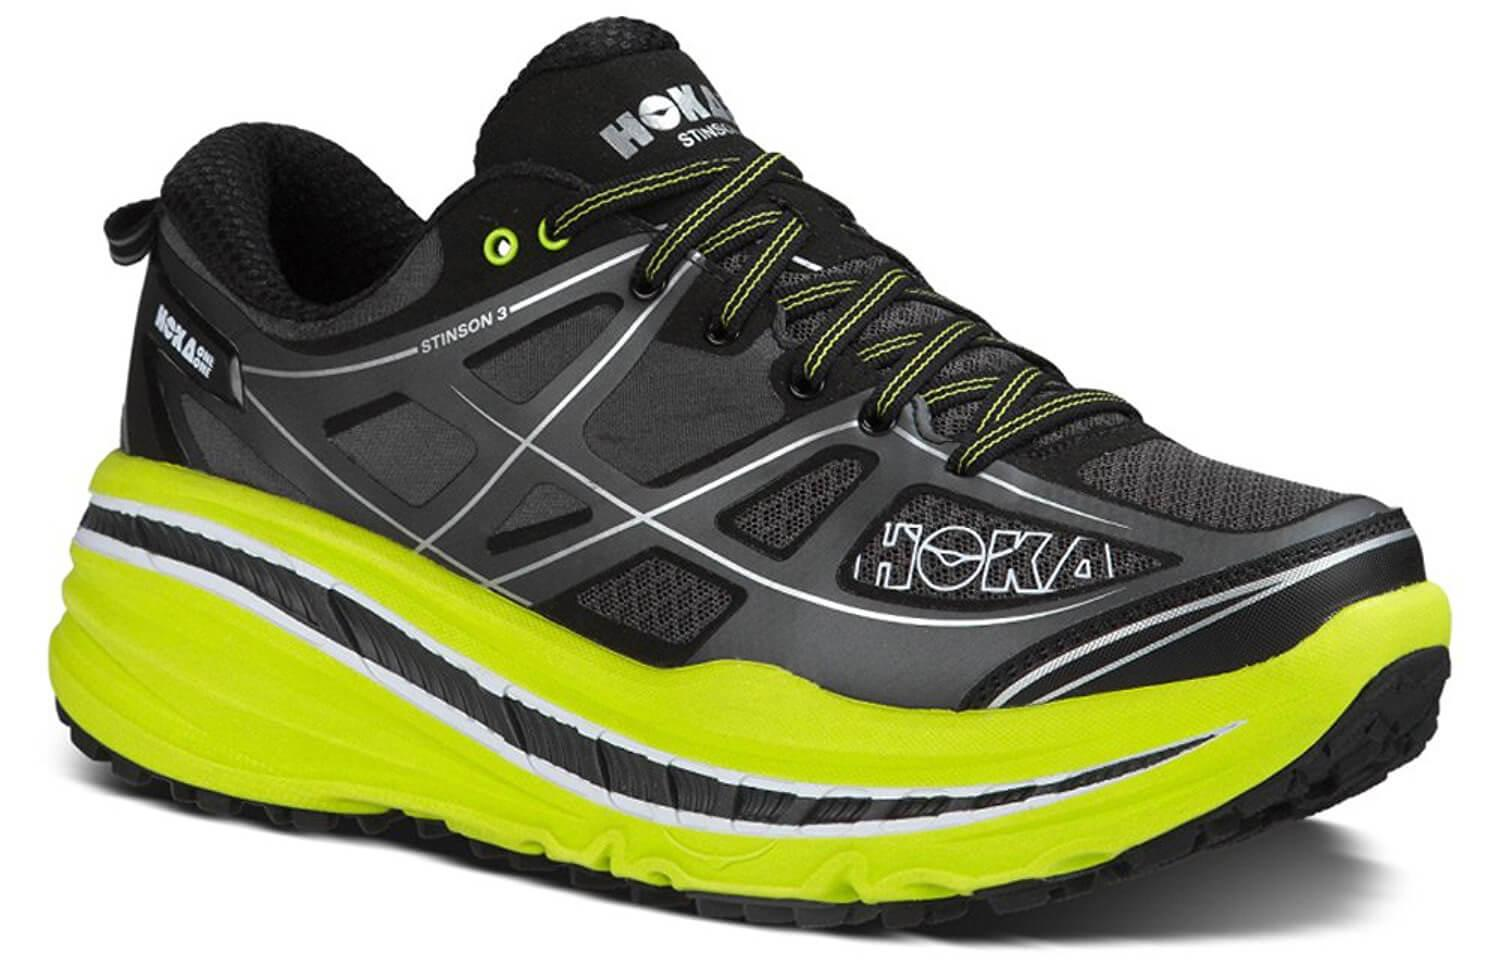 Hoka One One Stinson 3 ATR 1